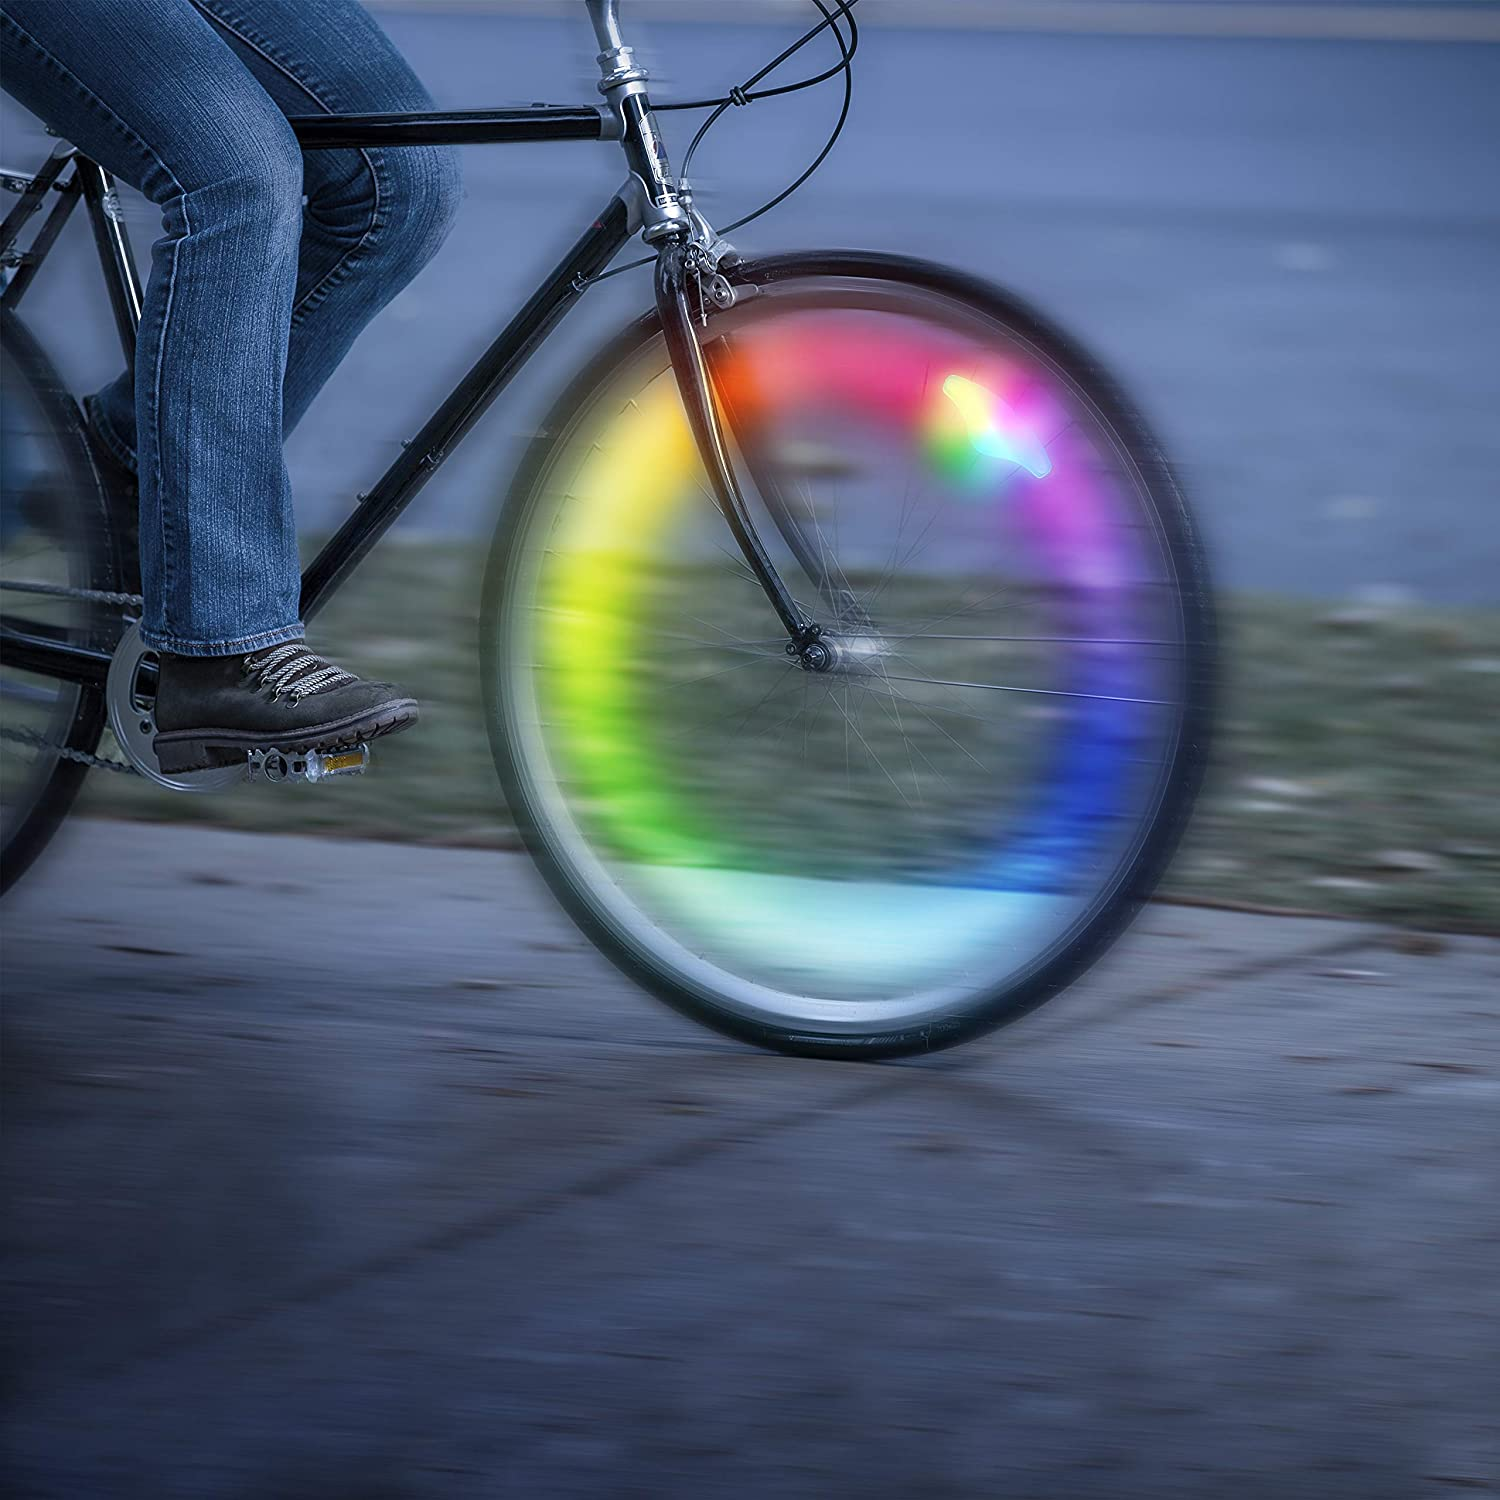 Disc-O Select Choose Your Color LED Nite Ize Spokelit Rechargeable Bicycle Spoke Light Visibility Safety Bike Light Single Pack